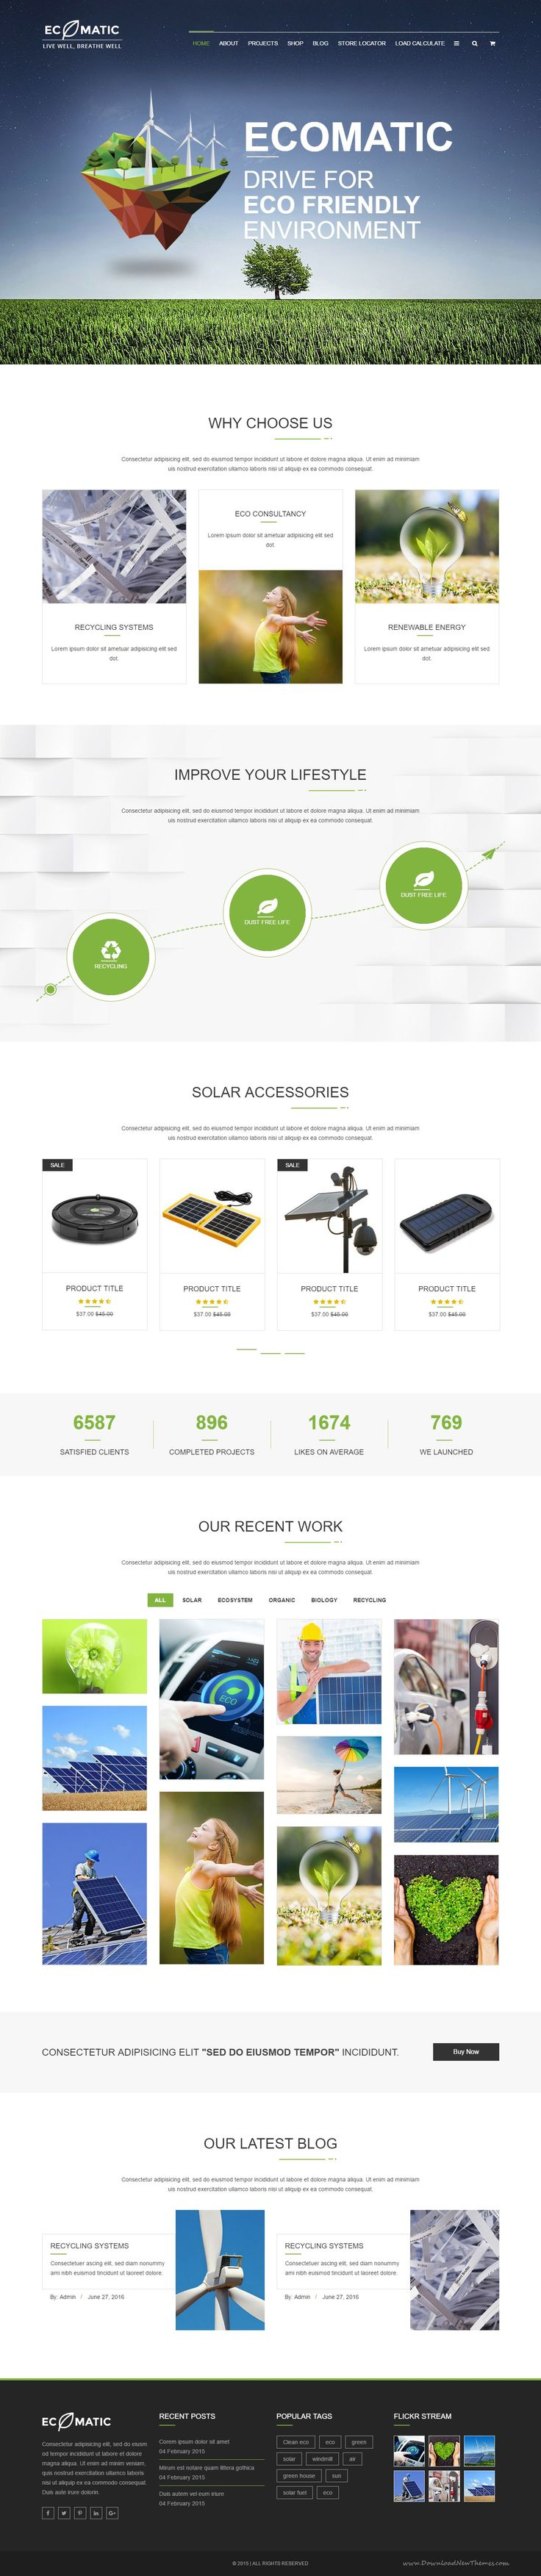 Ecomatic Responsive HTML Template for Renewable